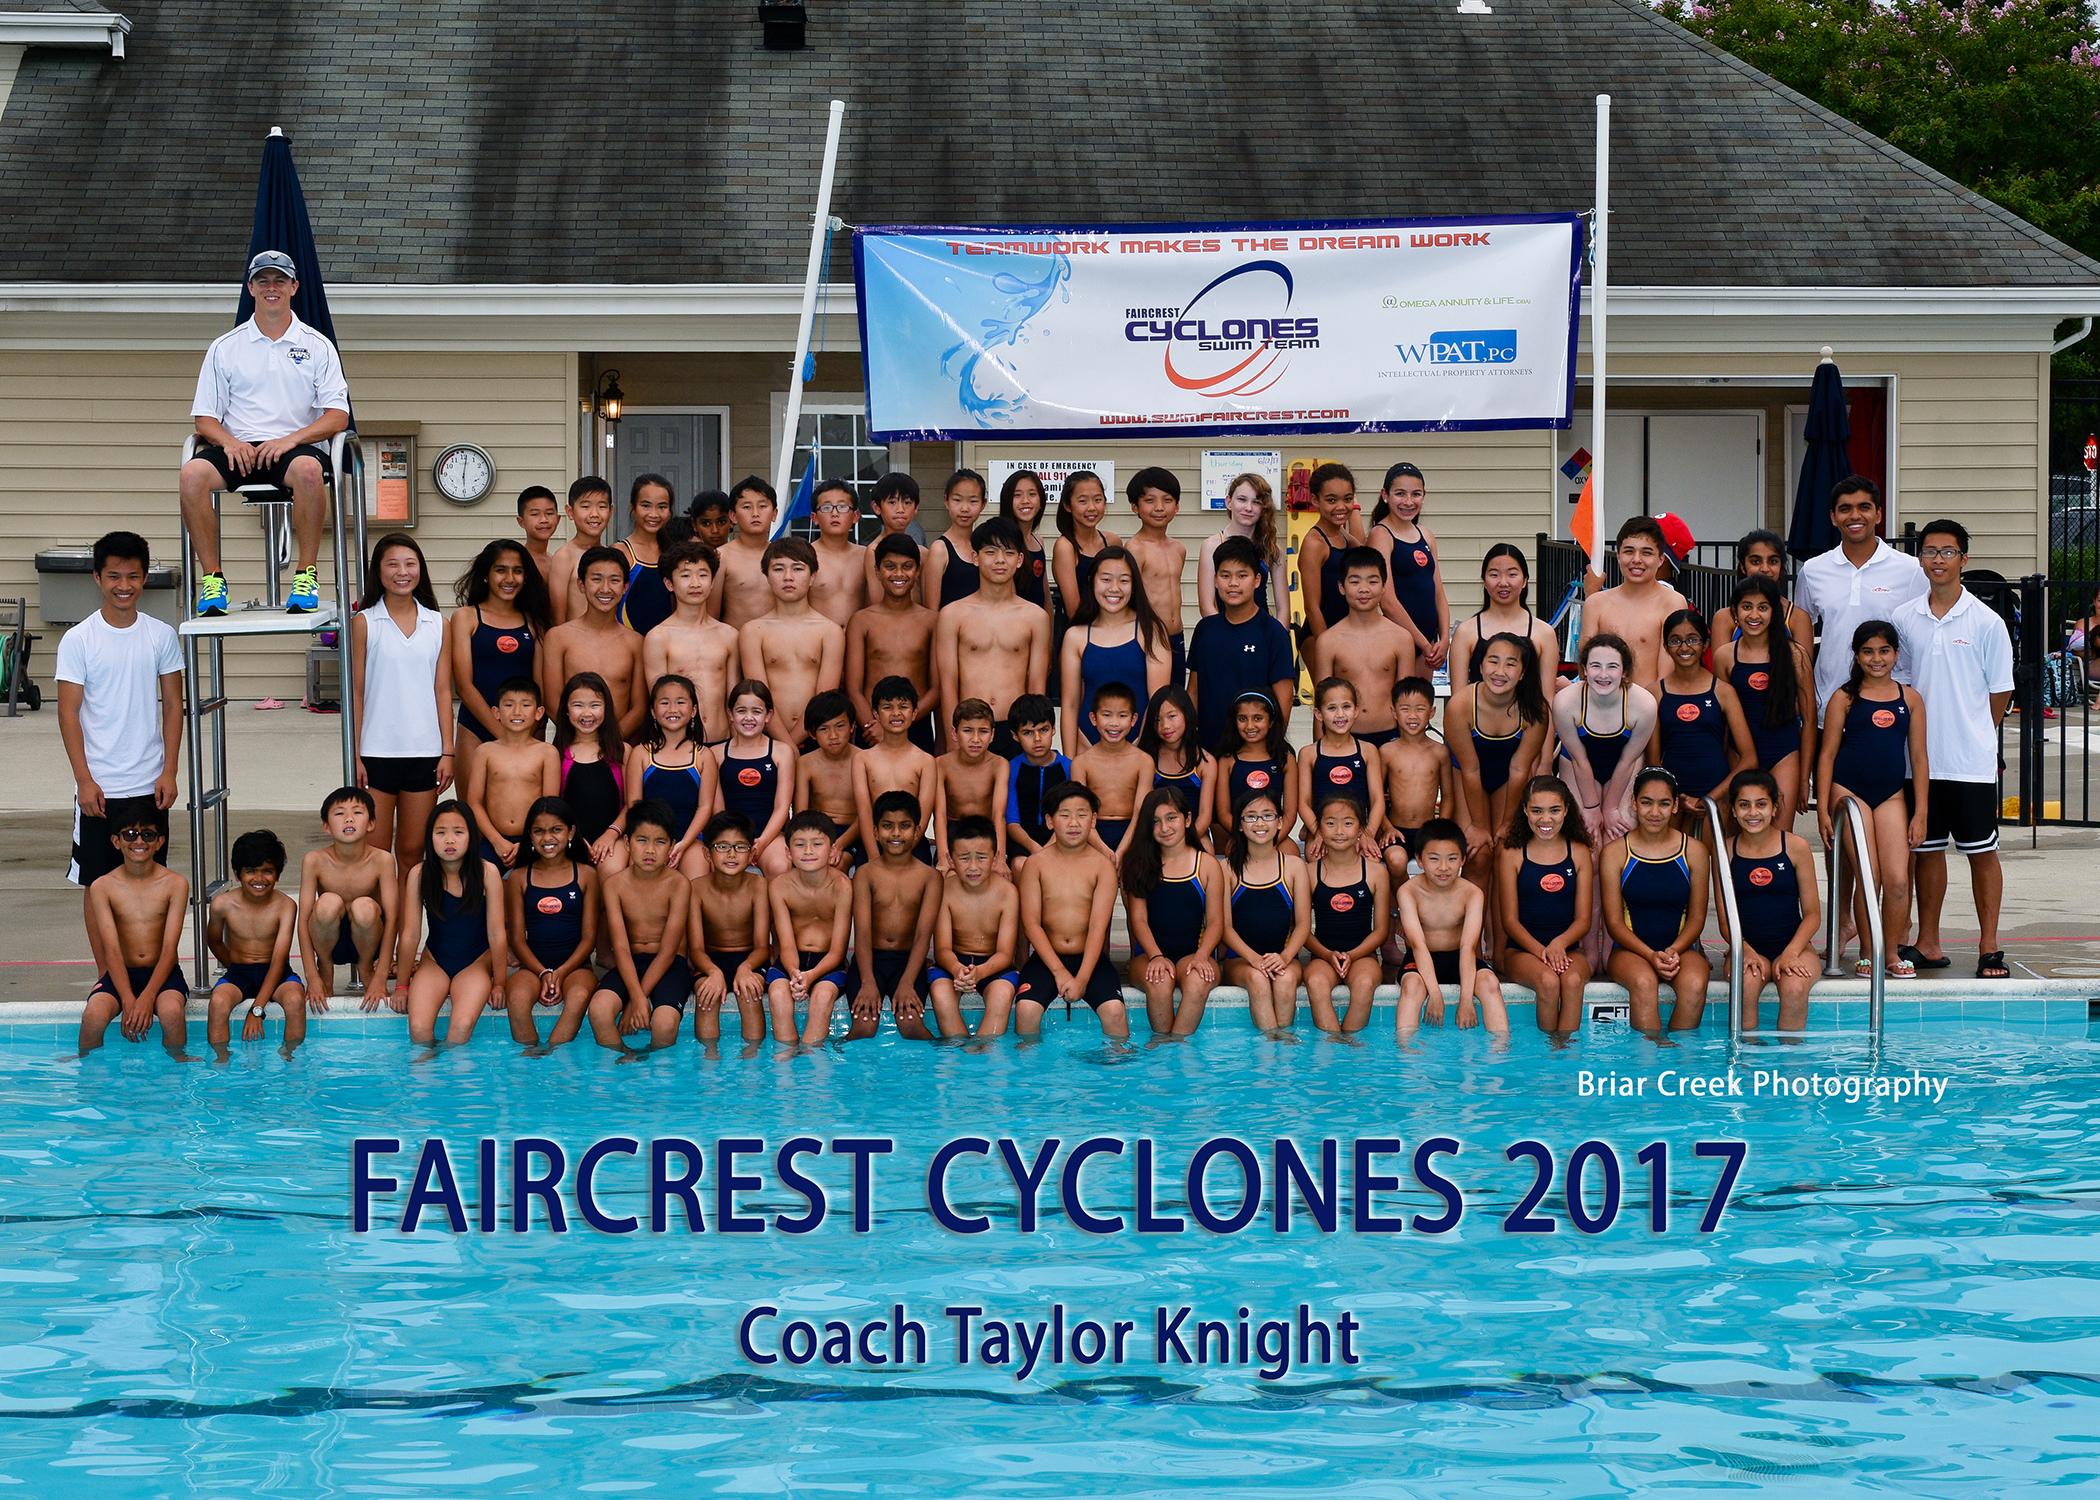 2017 Faircrest Cyclones (courtesy of Briar Creek Photography)